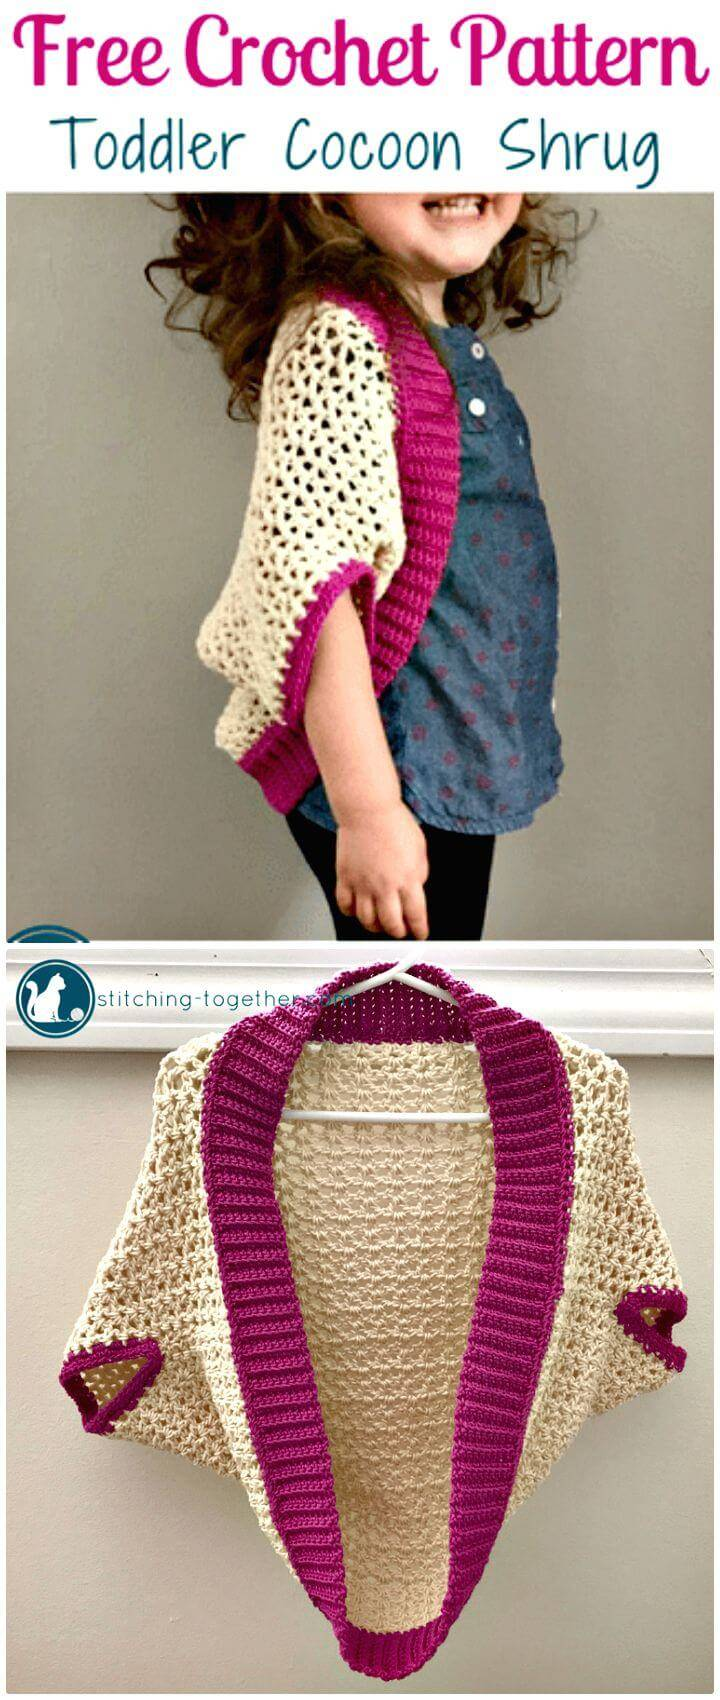 Crochet Shrug Patterns - 20 Free Unique Designs - DIY & Crafts